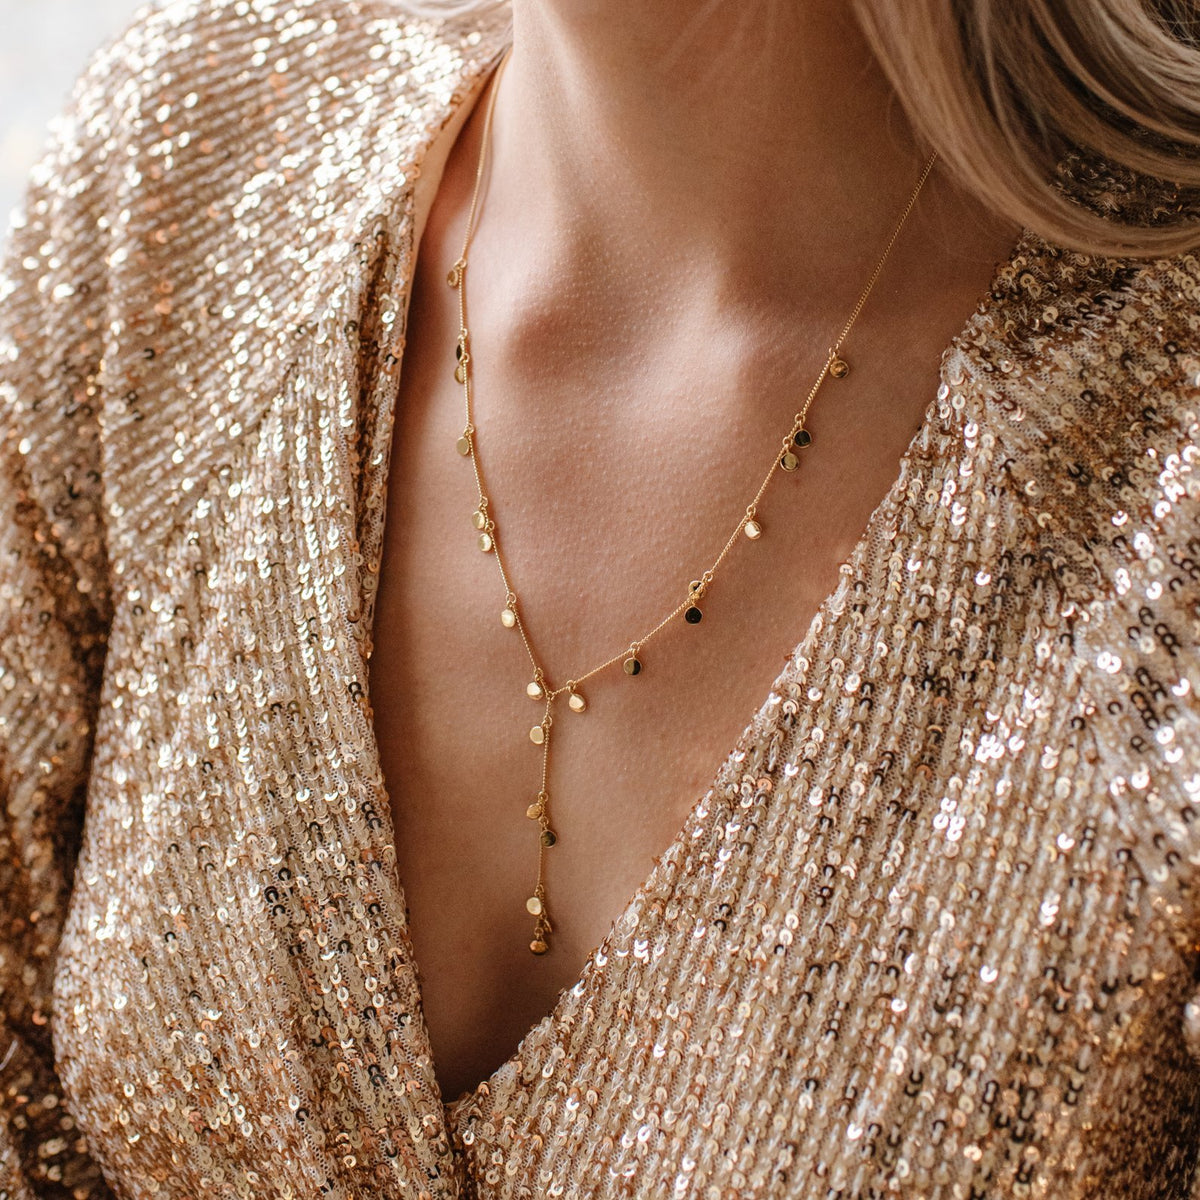 DAY 3 - DAINTY POISE DISK Y NECKLACE - GOLD, ROSE GOLD OR SILVER - SO PRETTY CARA COTTER